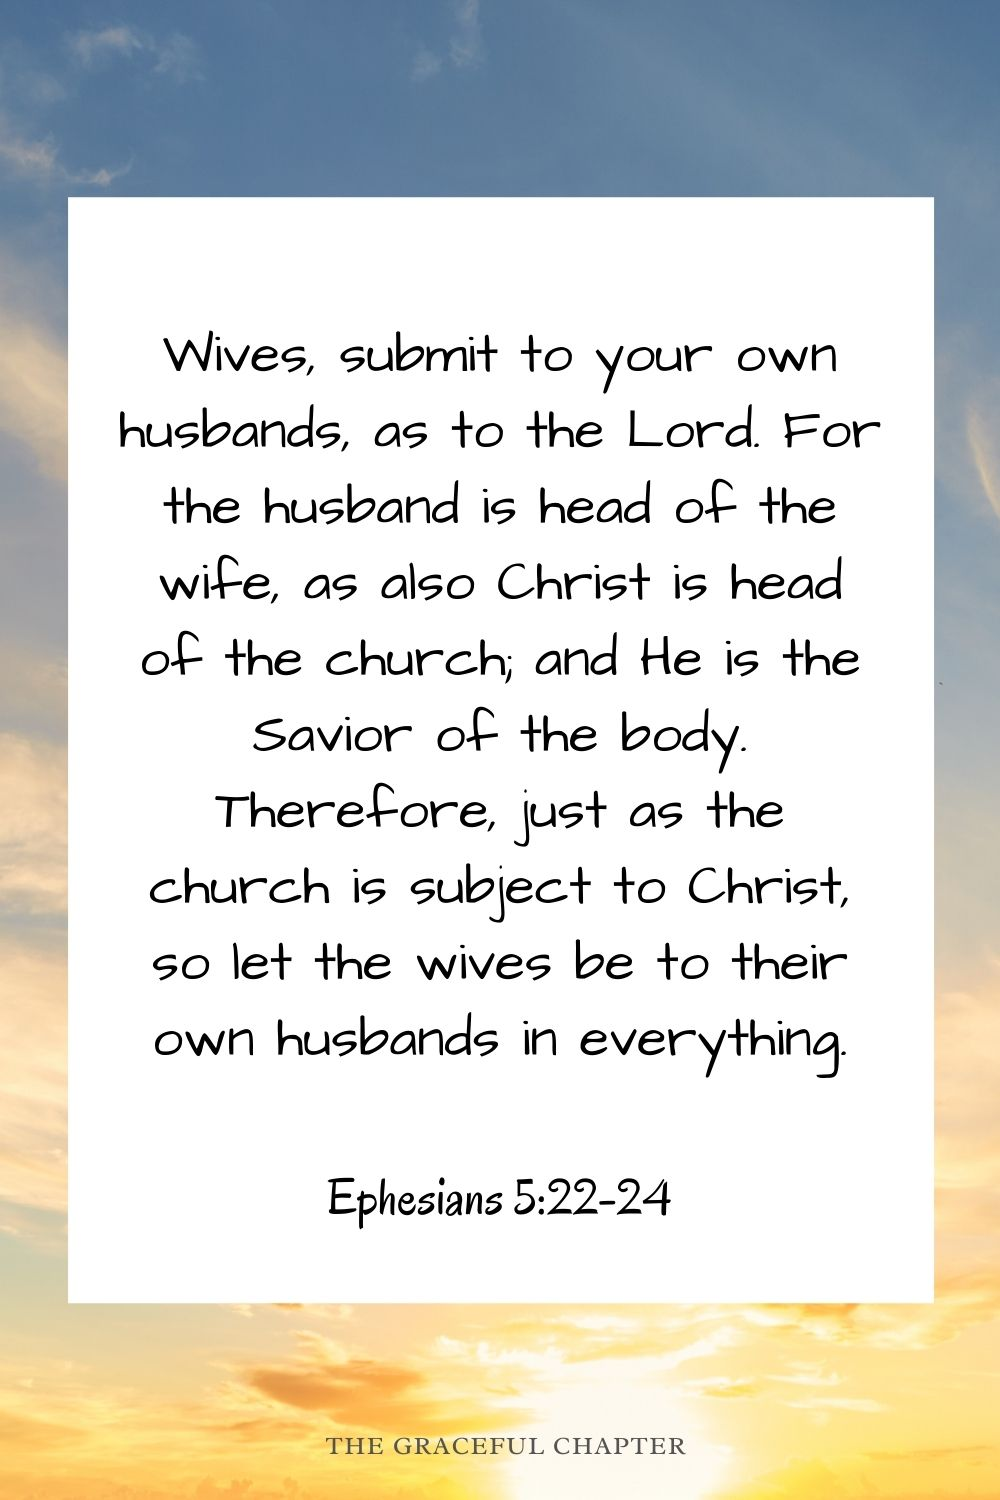 Wives, submit to your own husbands, as to the Lord. For the husband is head of the wife, as also Christ is head of the church; and He is the Savior of the body. Therefore, just as the church is subject to Christ, so let the wives be to their own husbands in everything. Ephesians 5:22-24